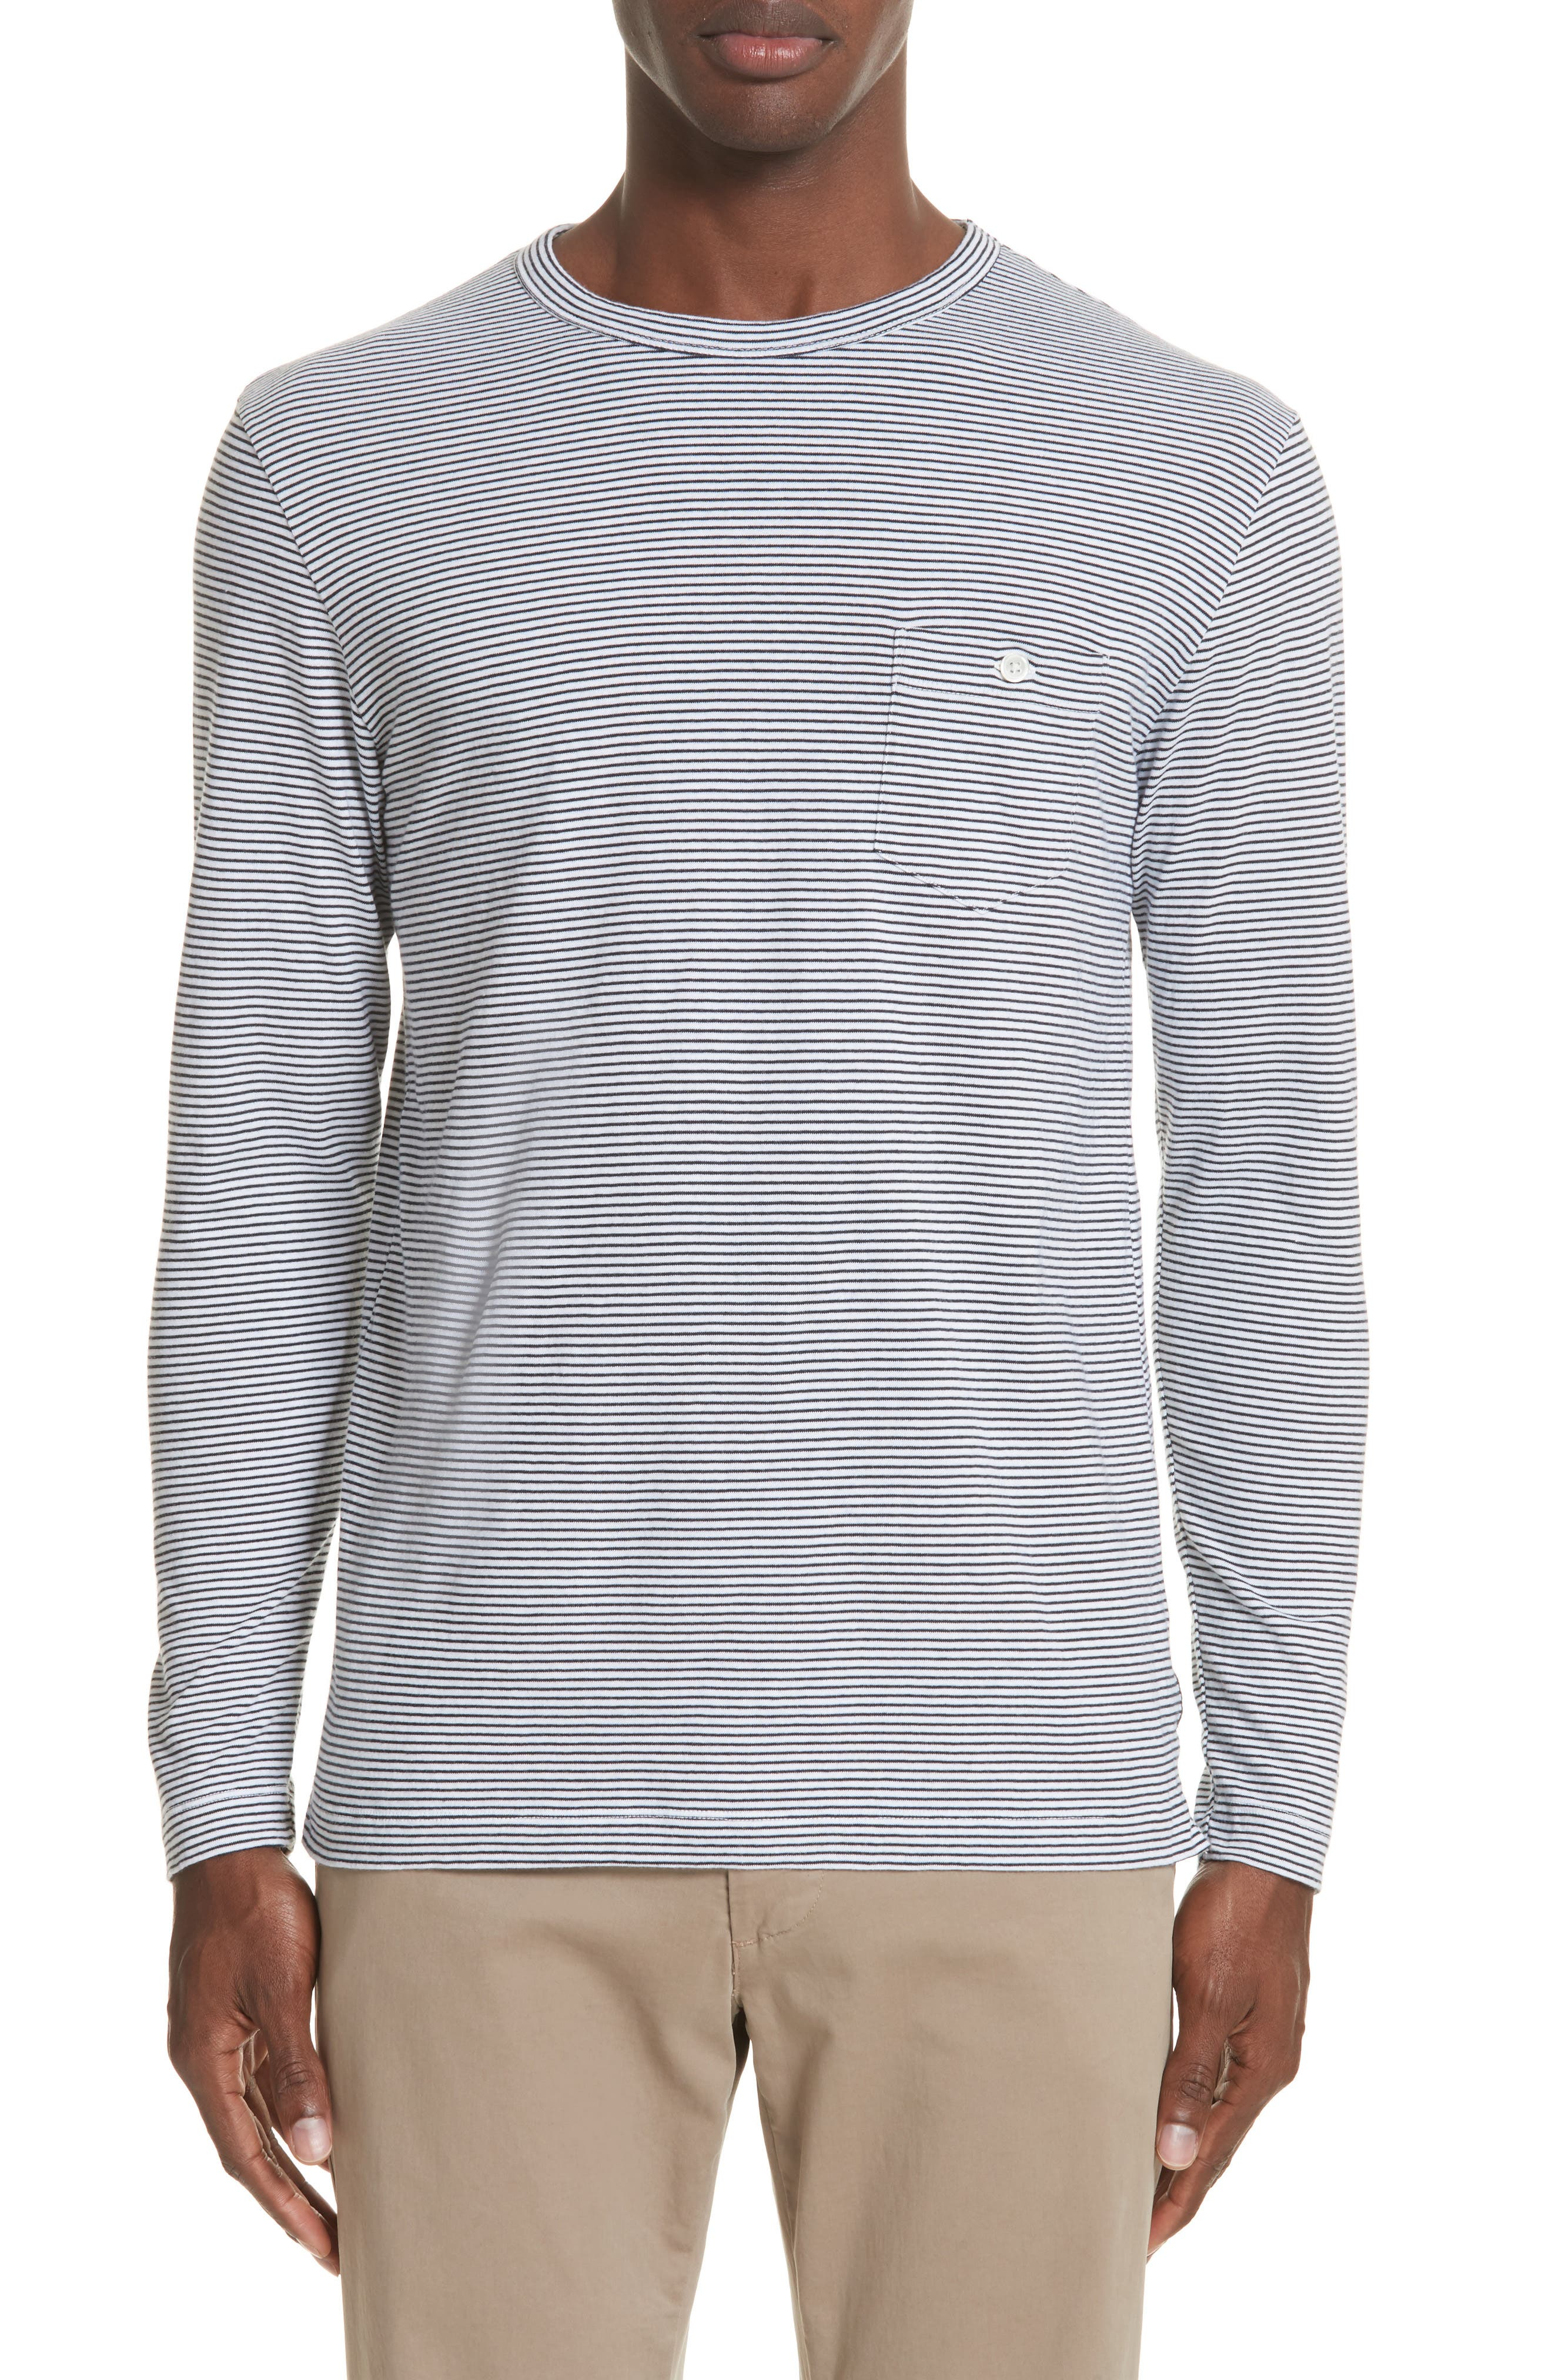 Todd Snyder Stripe Long Sleeve T-Shirt,                             Main thumbnail 1, color,                             Navy